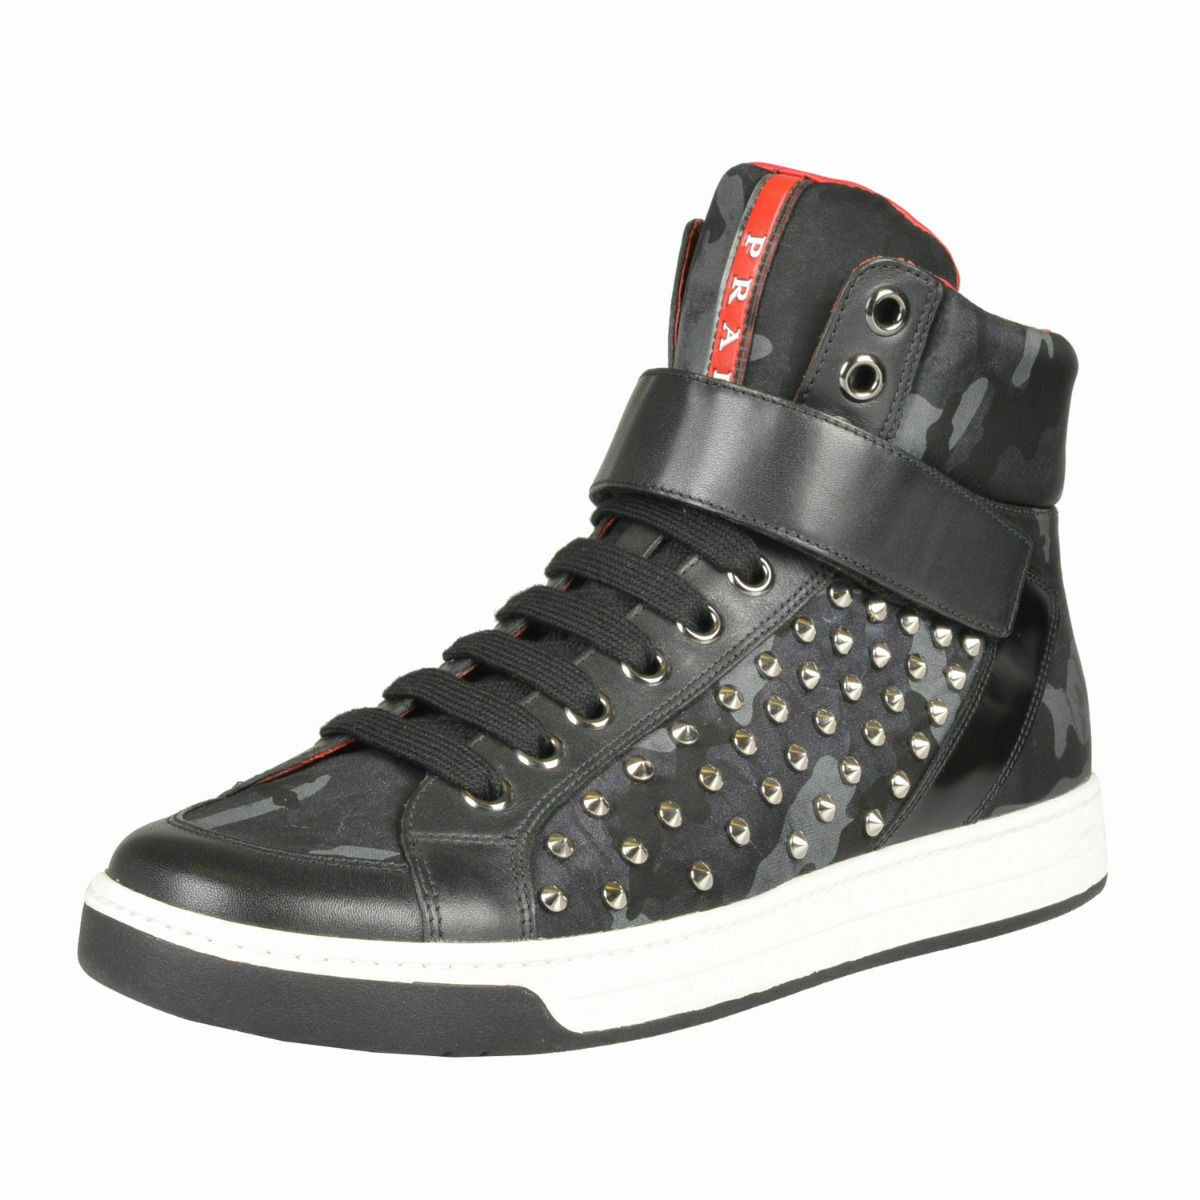 Prada Leather Hi Top Studs Decorated Fashion Sneakers shoes Sz 7 7.5 8 8.5 9 9.5